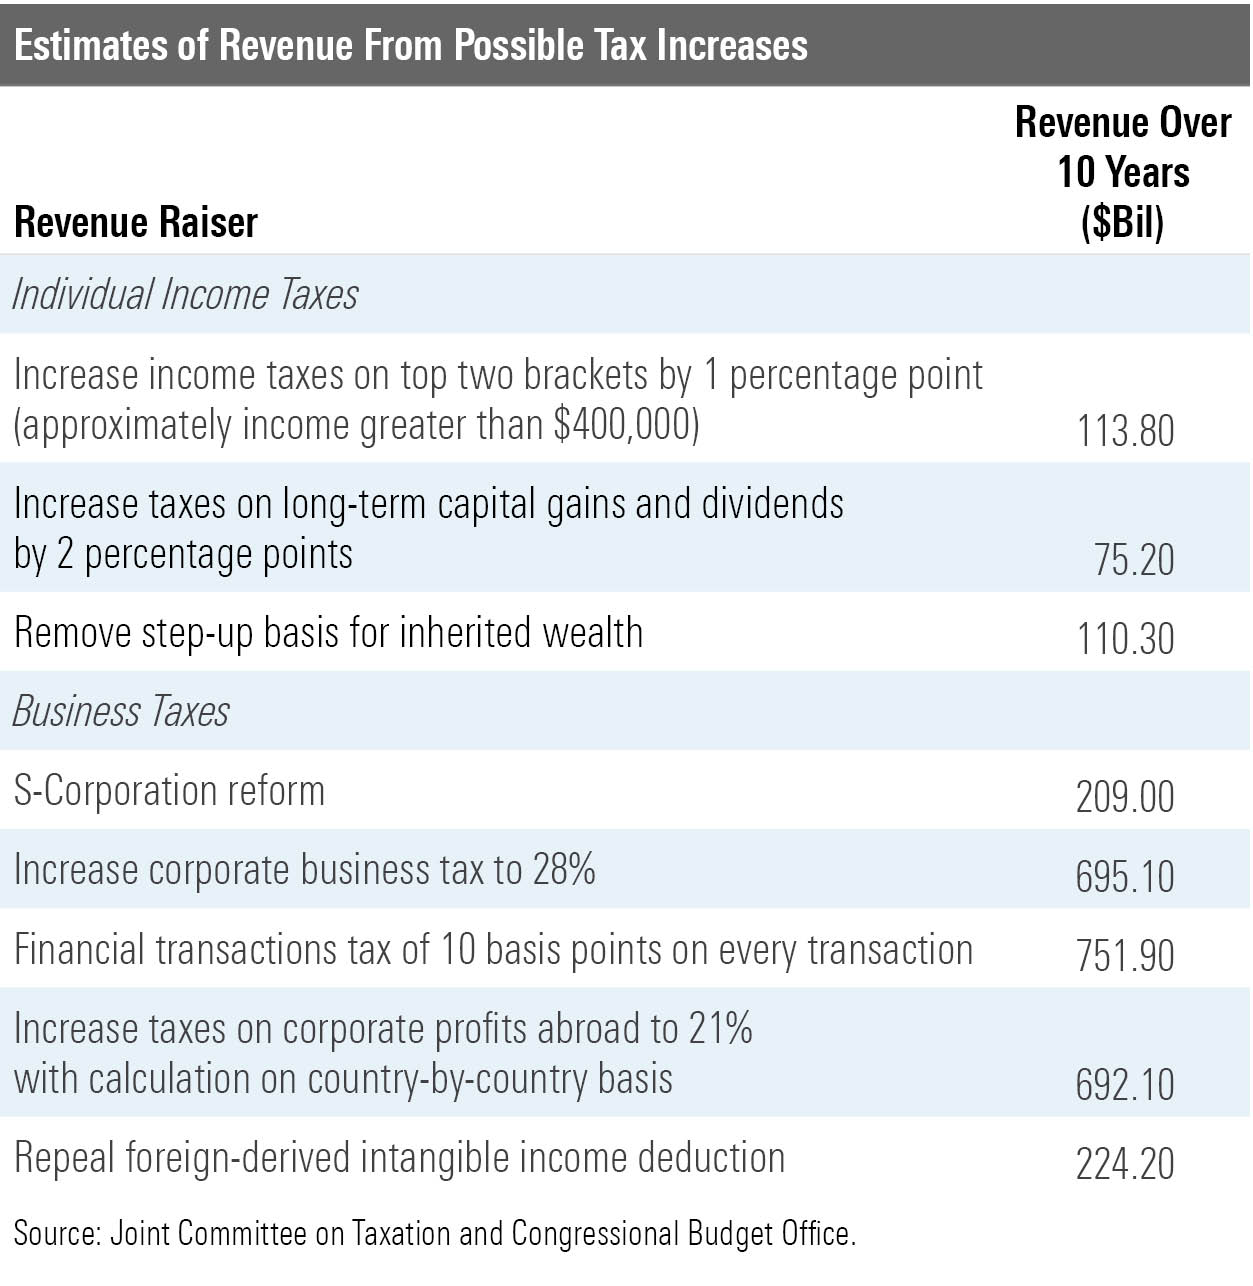 Estimates of revenue from possible tax increases